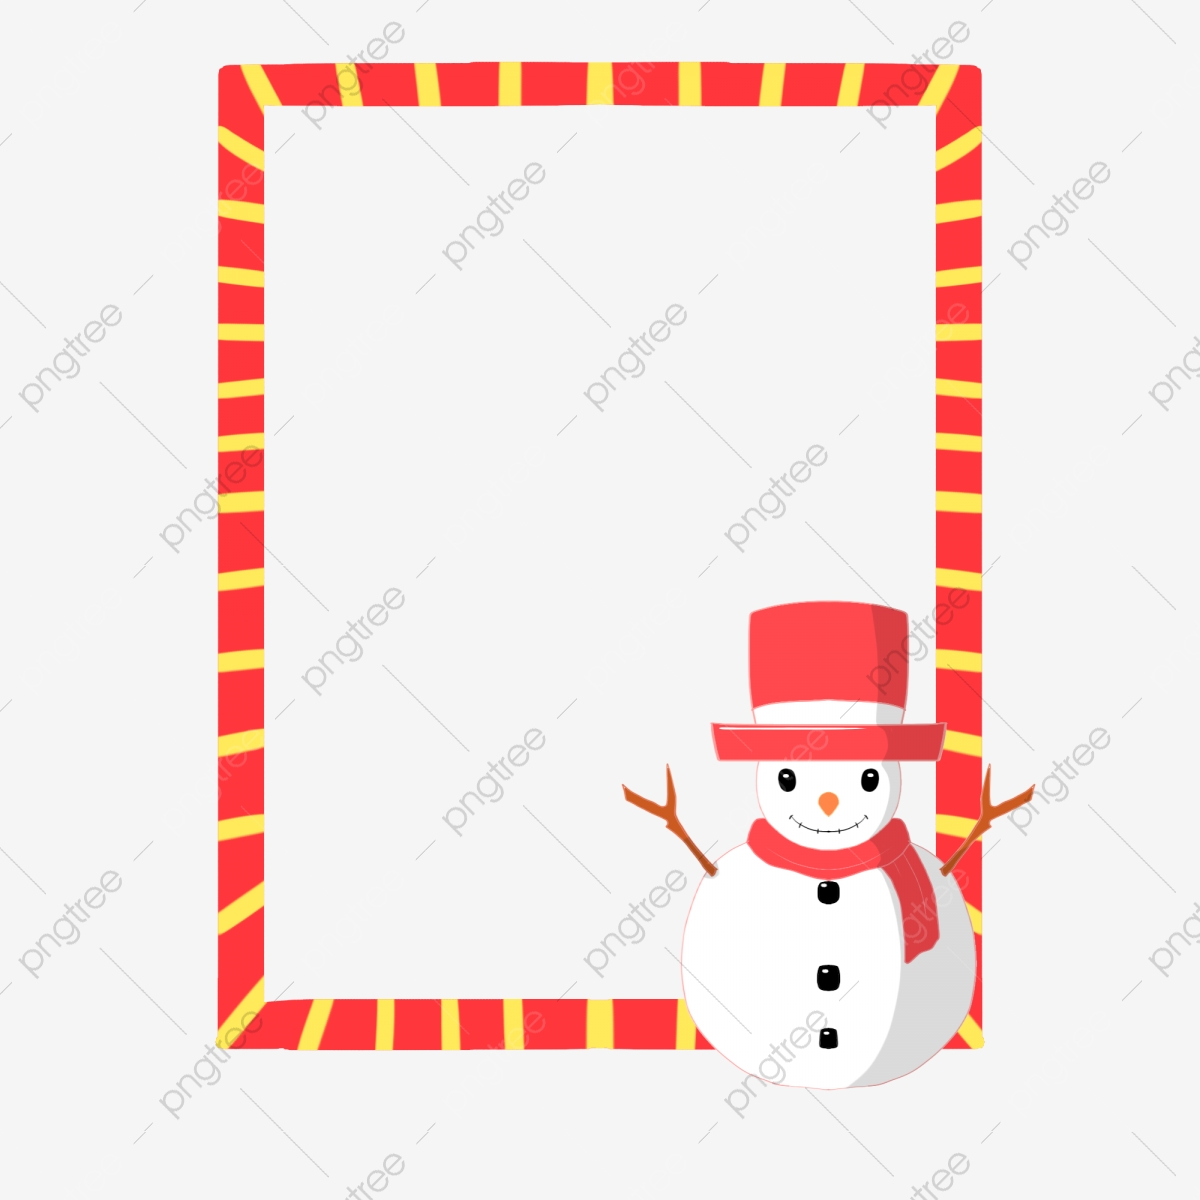 Cute Snowman Snowman Border Illustration Snowman Wearing Red ... svg black and white download